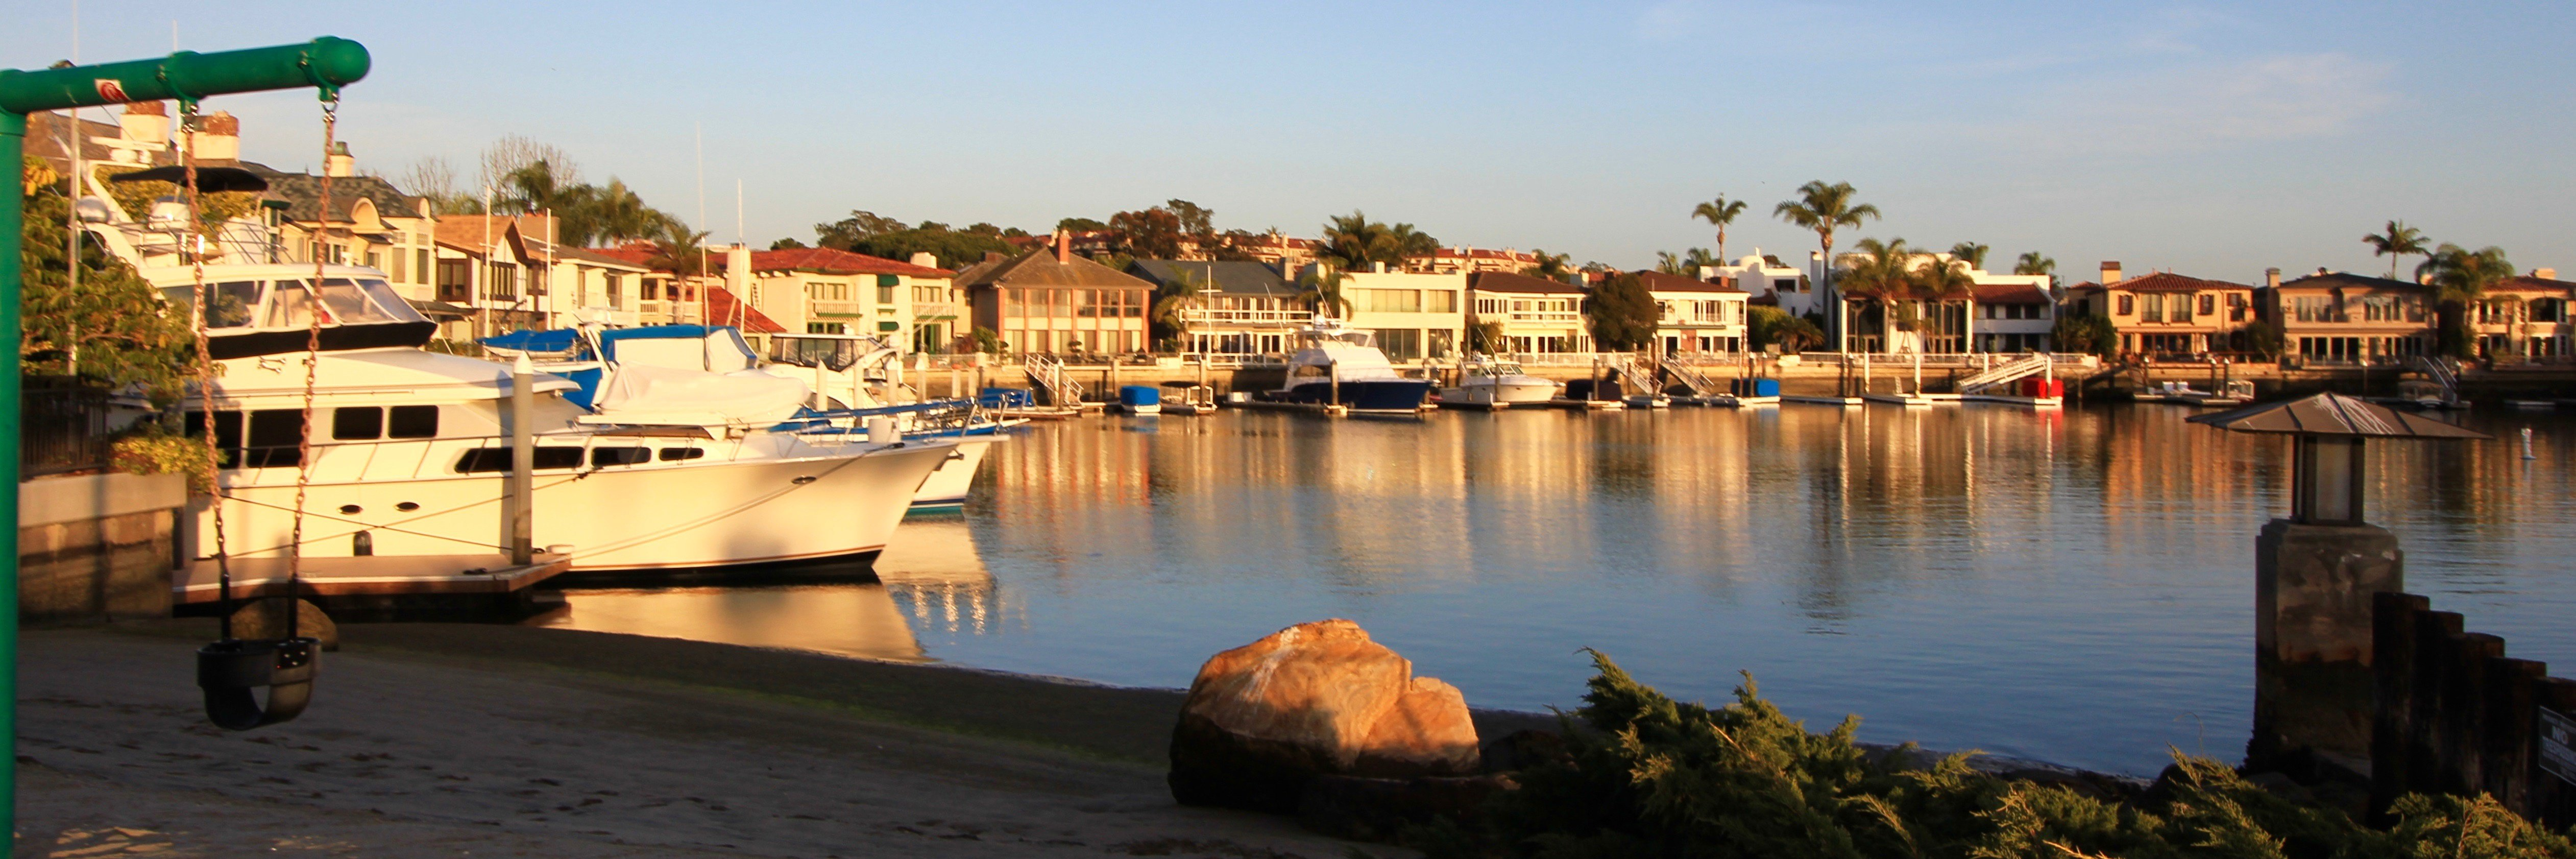 Linda Isle is a housing community located in Newport Beach, CA